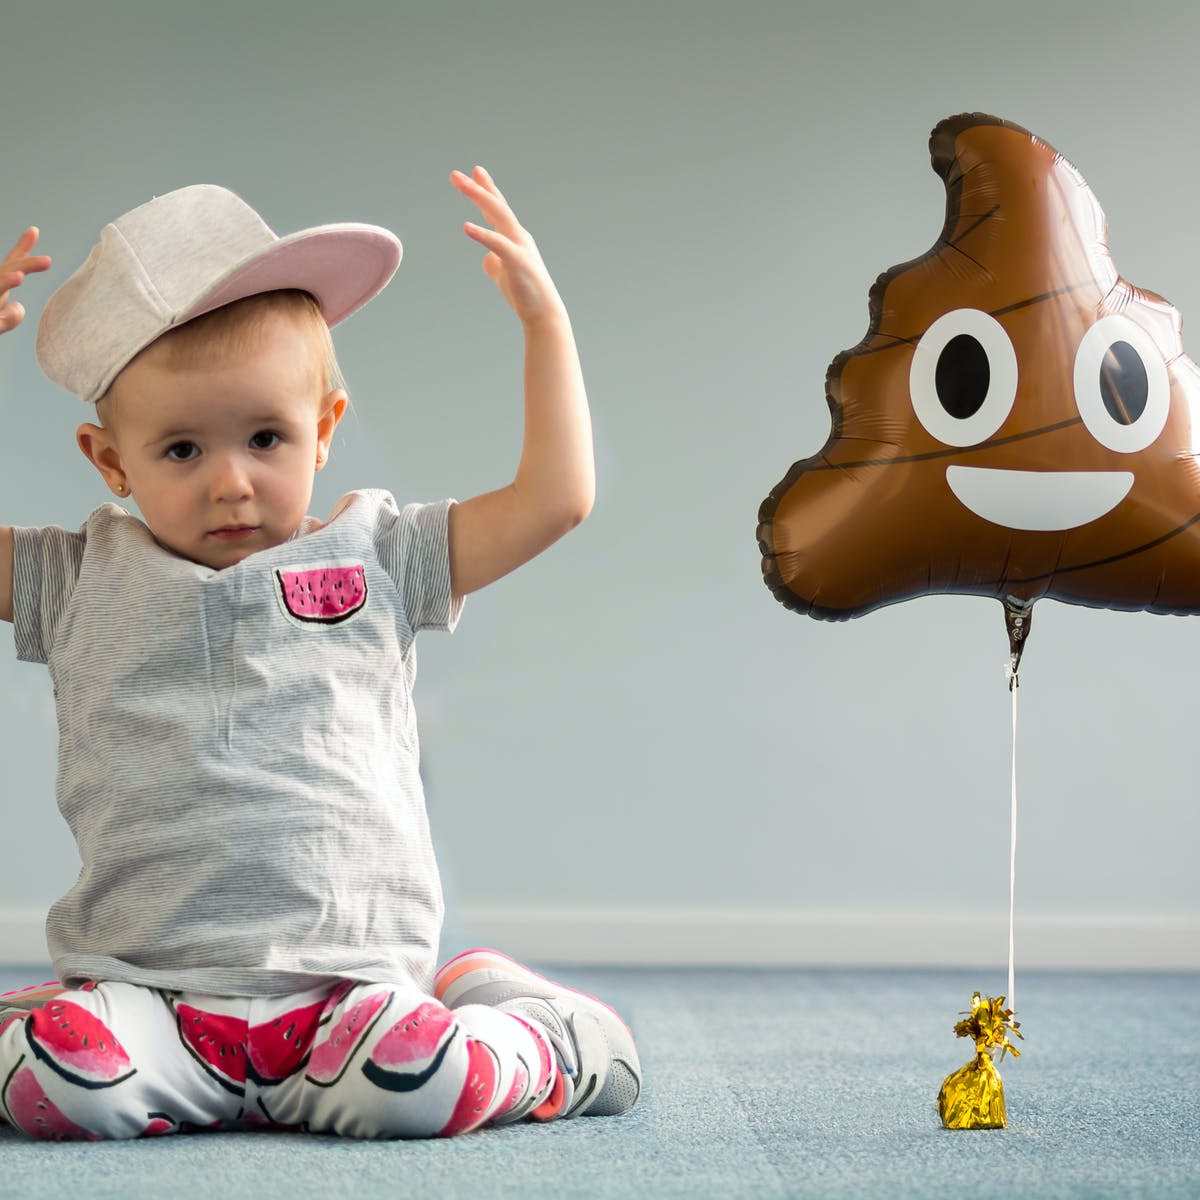 Why children find 'poo' so hilarious – and how adults should